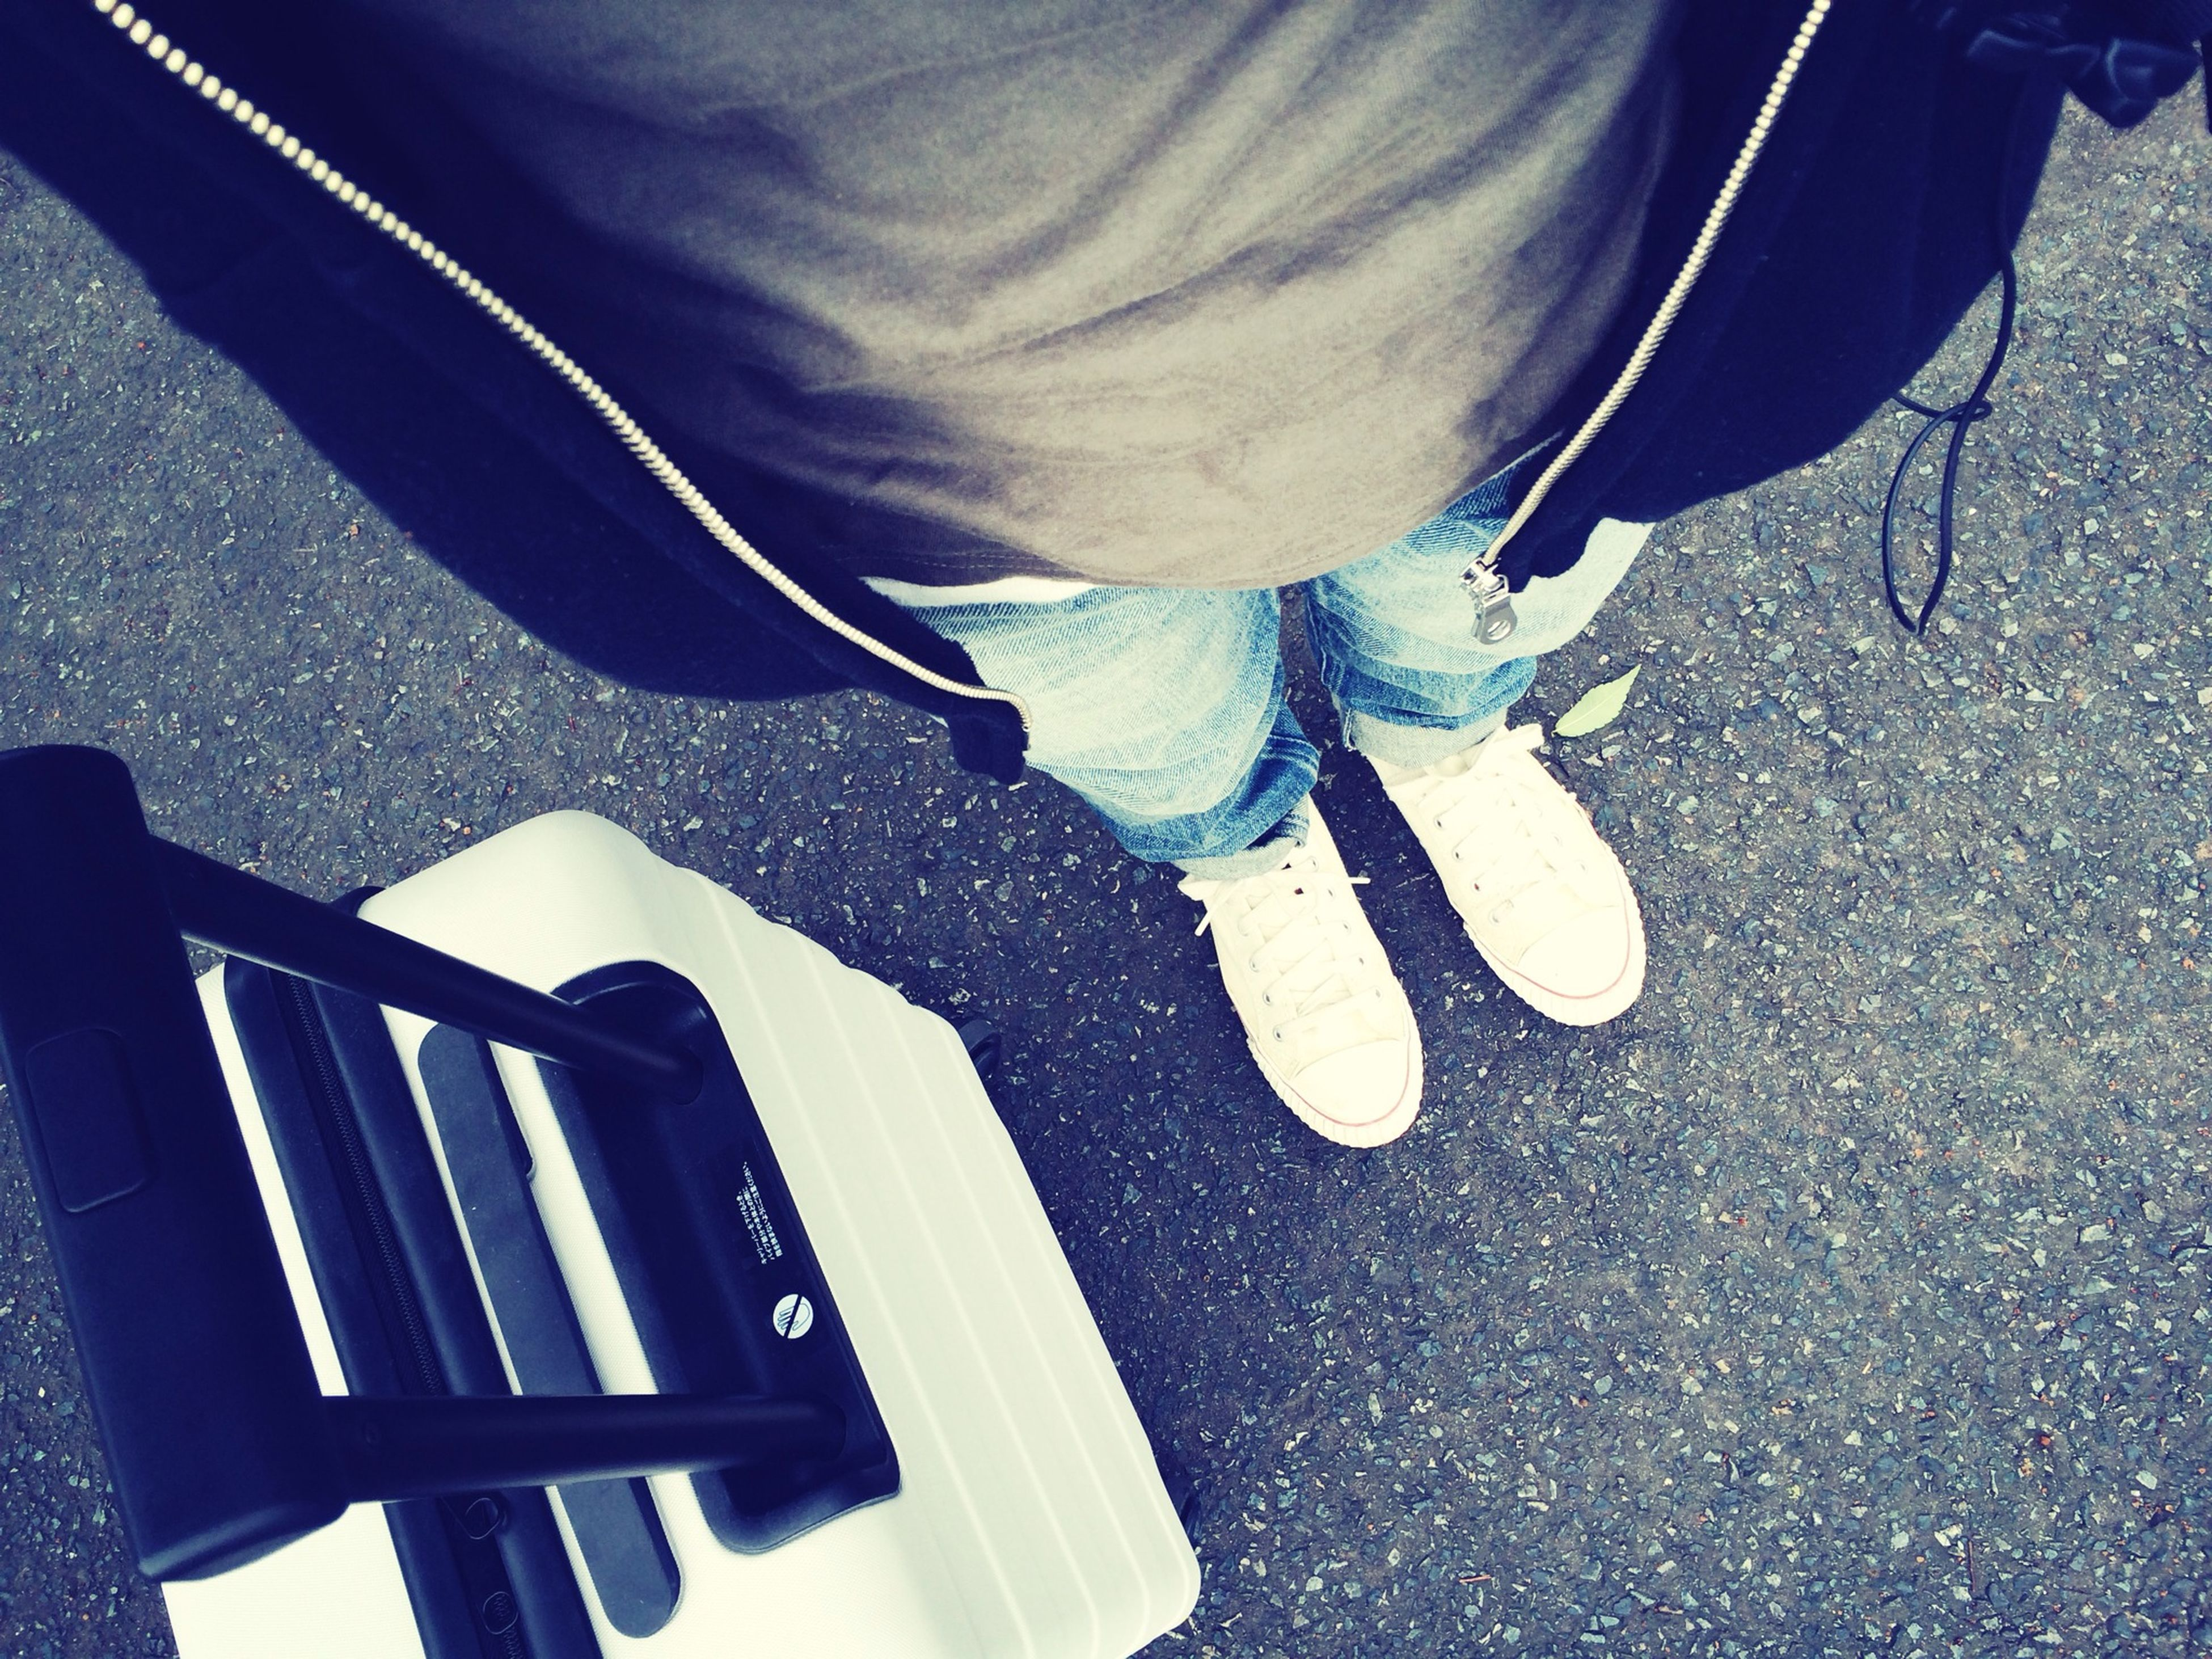 low section, person, high angle view, shoe, lifestyles, leisure activity, footwear, street, casual clothing, standing, jeans, shadow, men, human foot, road, sunlight, high heels